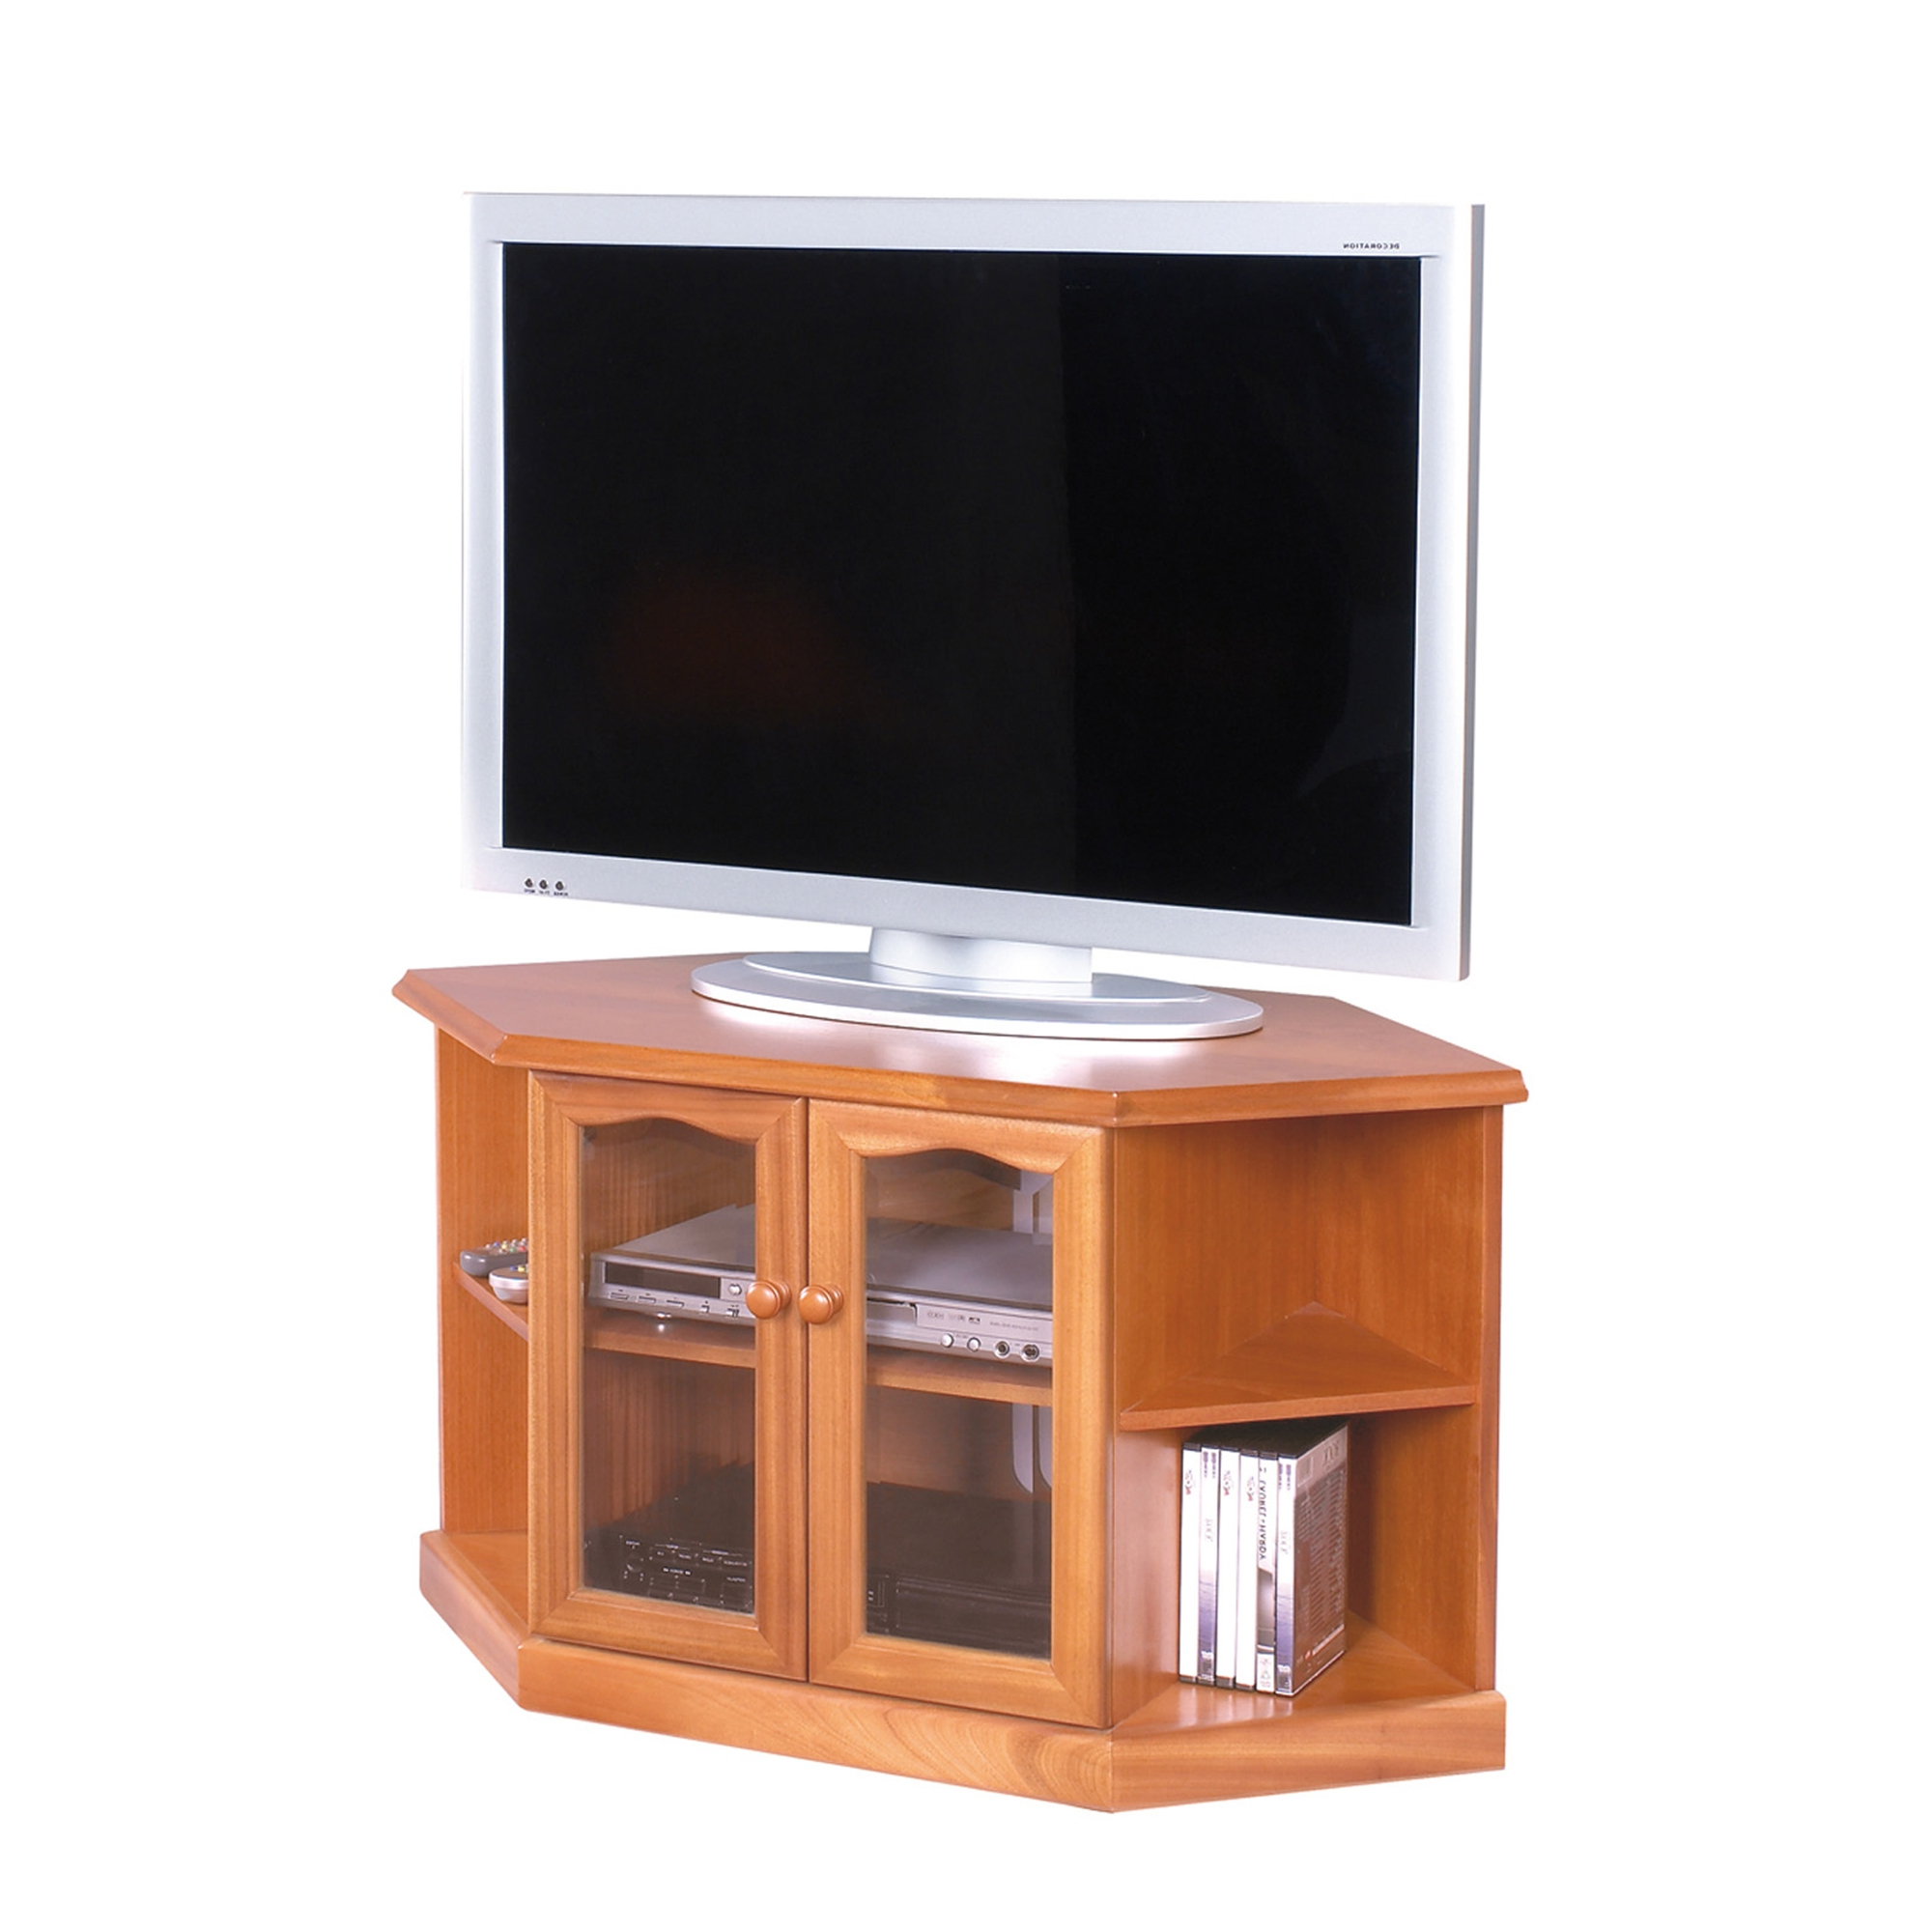 Corner Tv Units Within Most Recently Released Sutcliffe Trafalgar Teak Corner Tv Unit – Sutcliffe – Cookes Furniture (View 19 of 20)